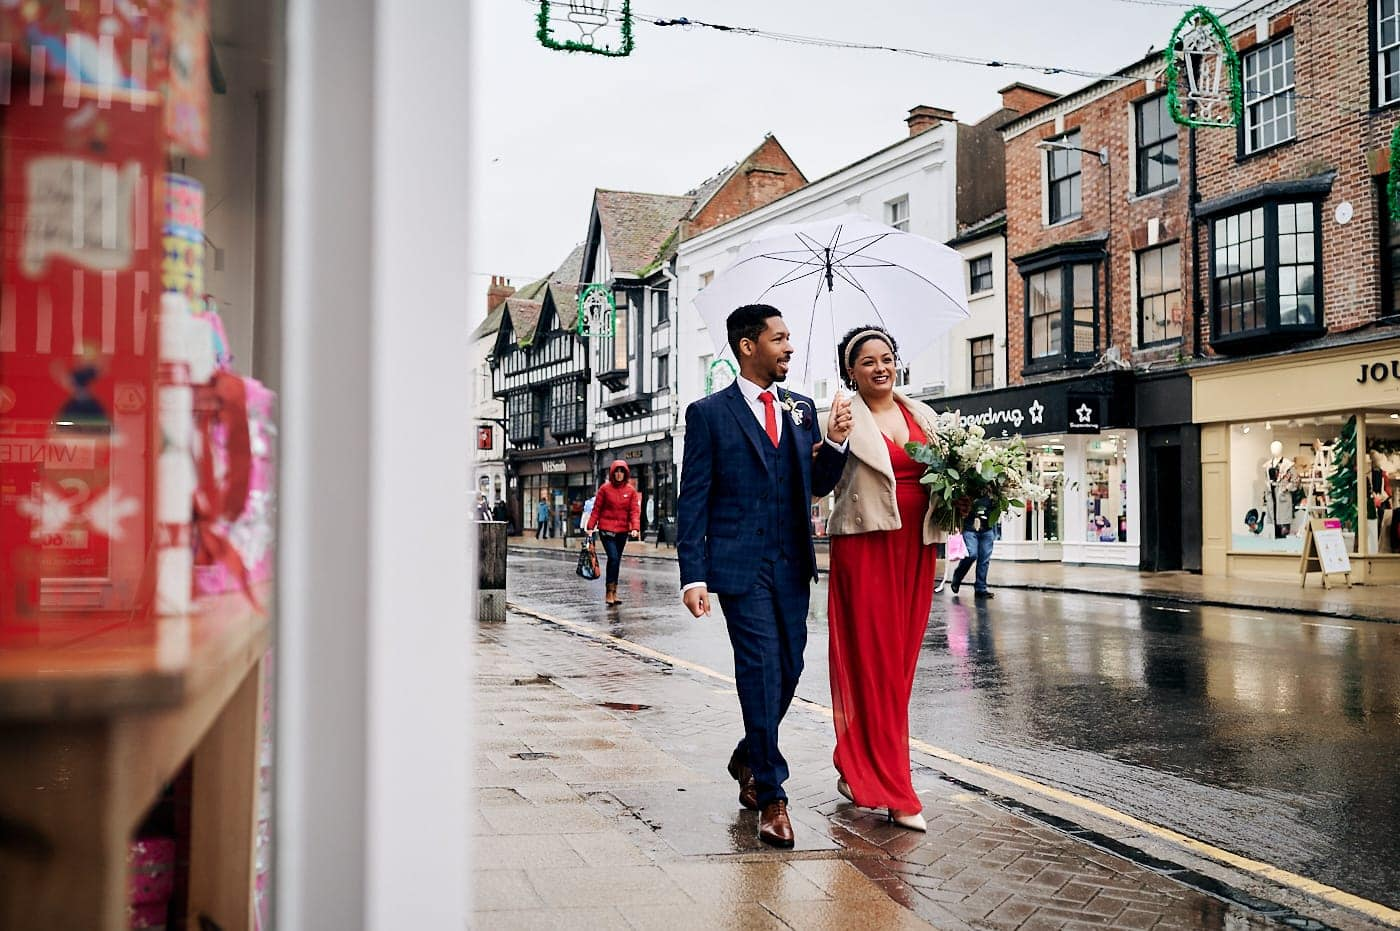 Bride and groom just married in Stratford-upon-Avon